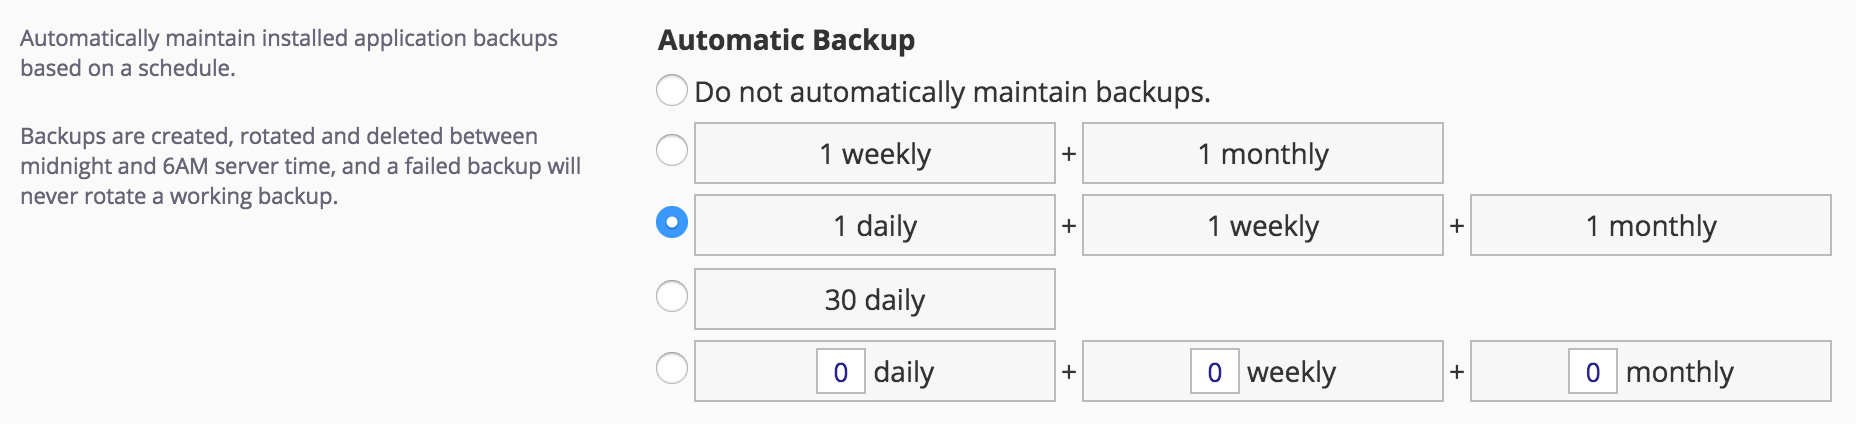 Automated Backup Intervals